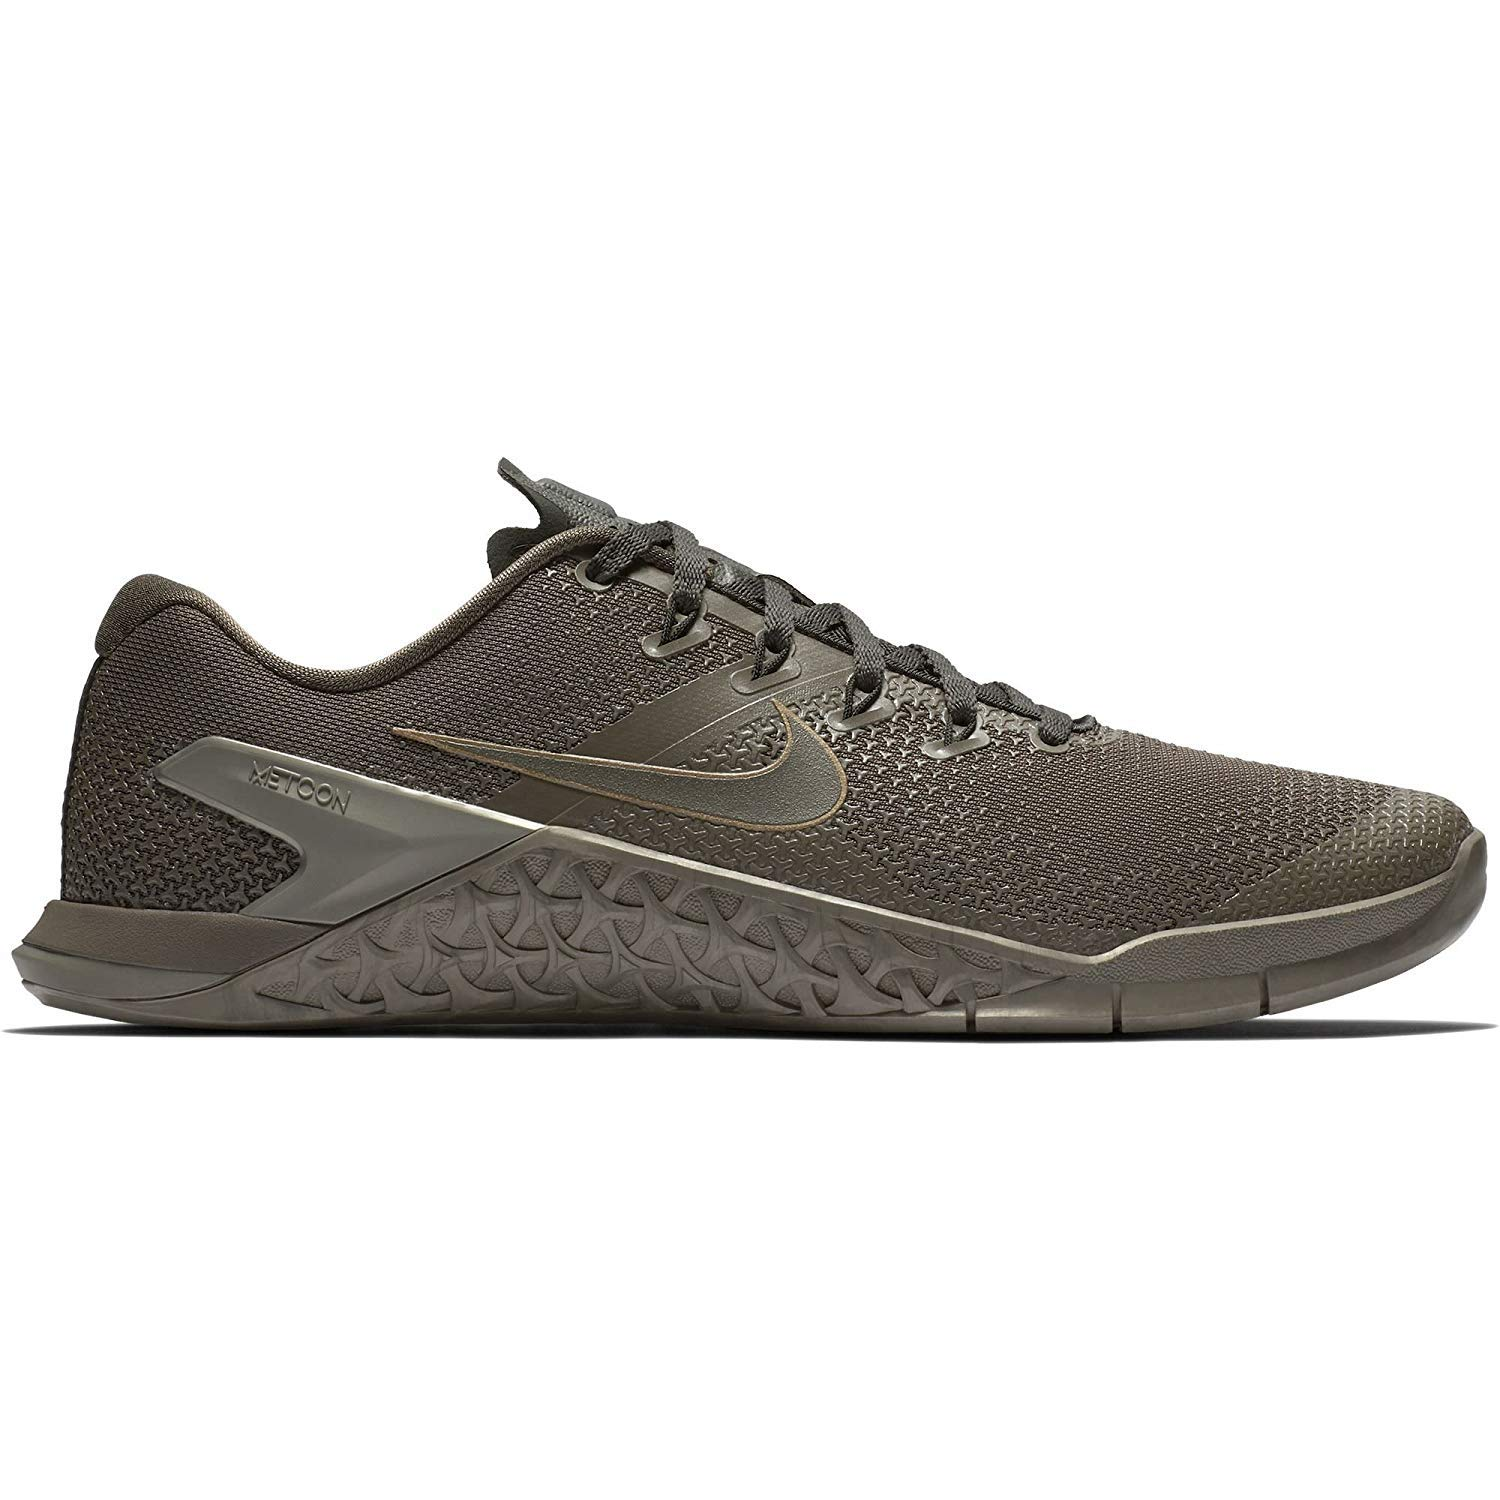 931e8e1d6 Amazon.com: Nike Men's Metcon 4 Viking Quest Training Shoe RIDGEROCK/MTLC  Pewter-Anthracite-Black 14.0: Sports & Outdoors